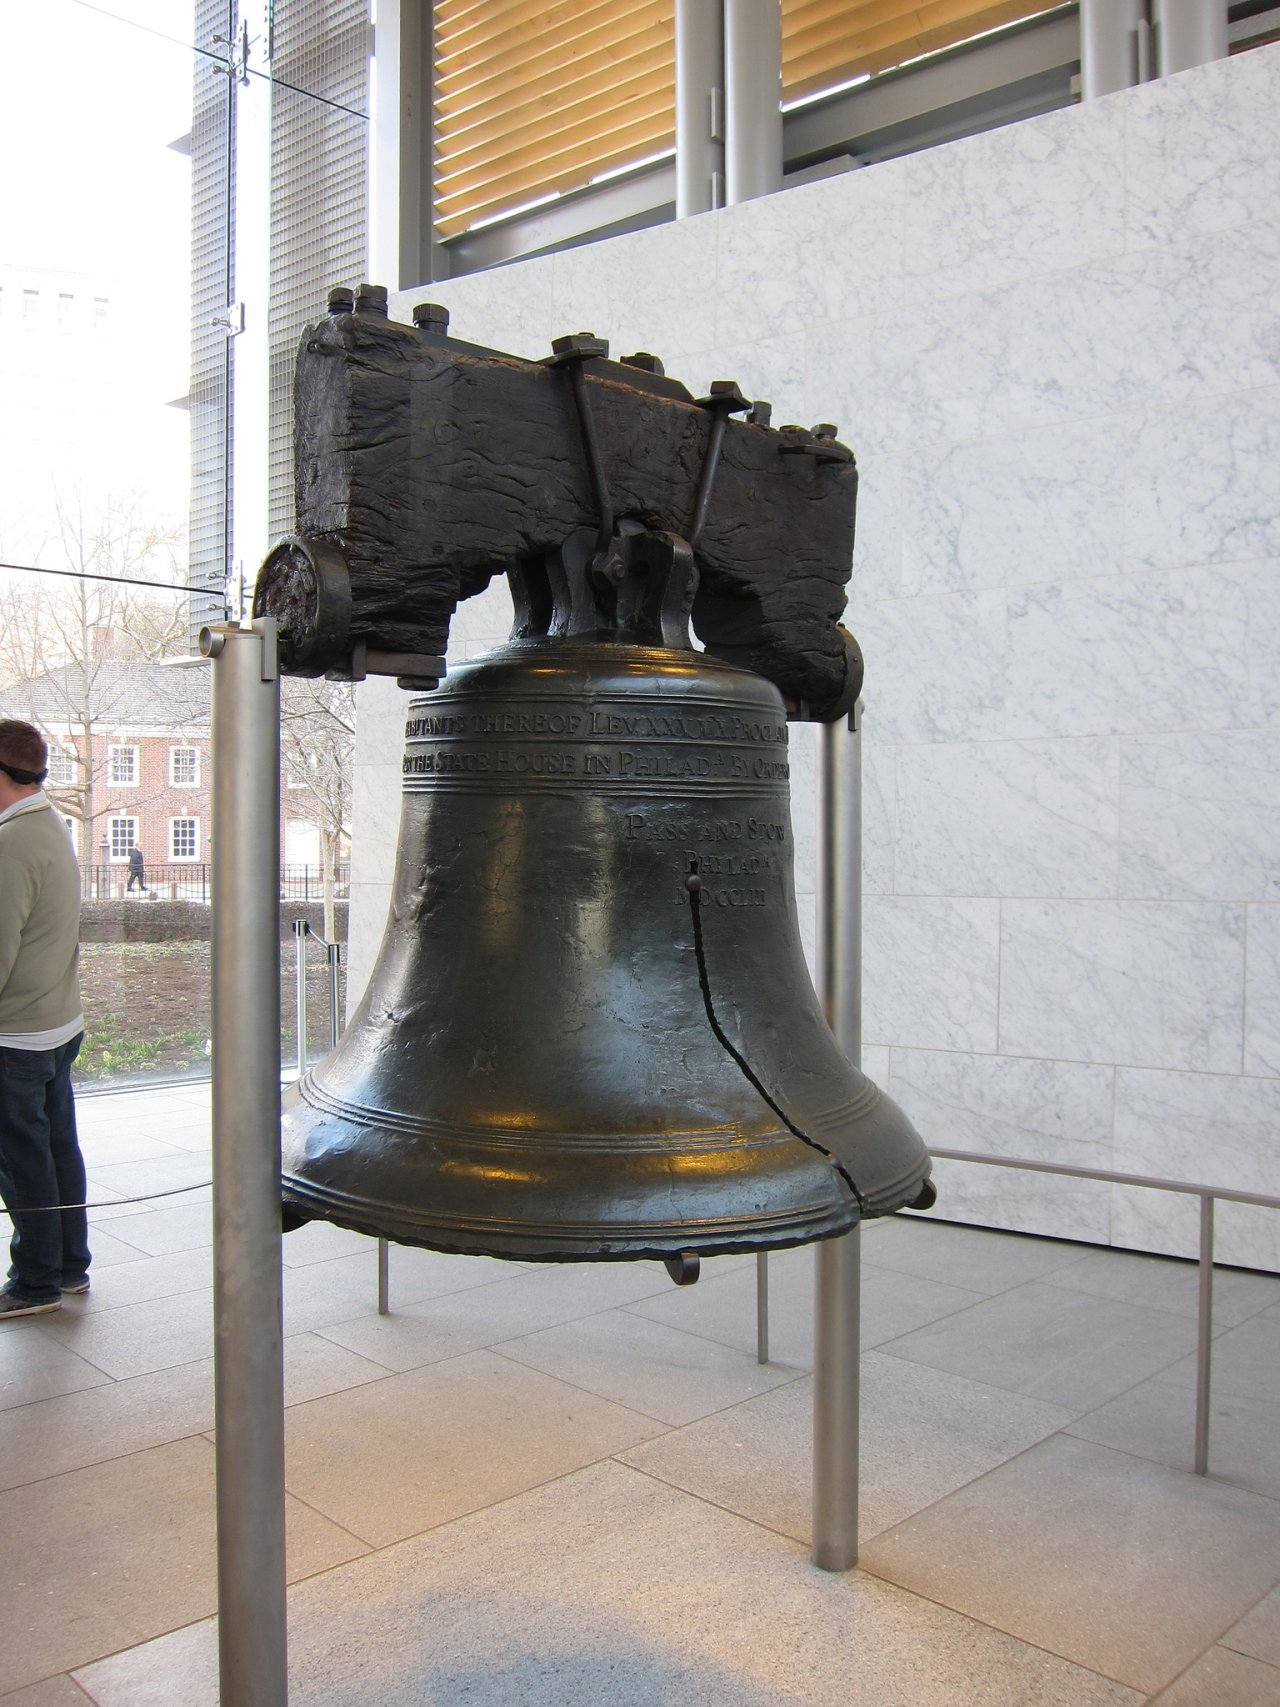 Liberty Bell Center, Philadelphia, Visit in USA